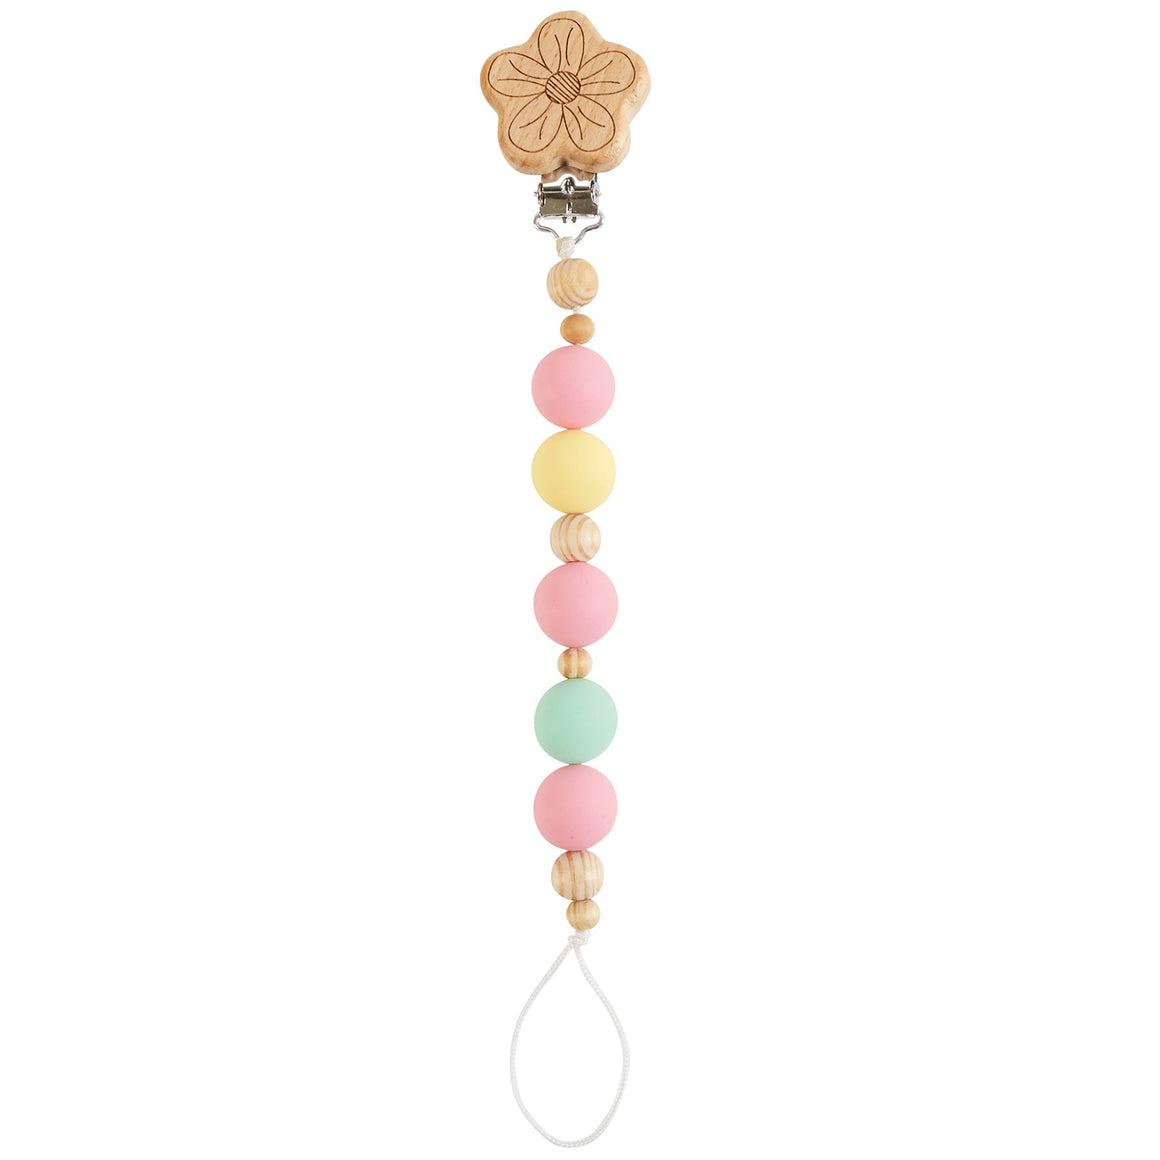 Flower Wooden Pacy Clip